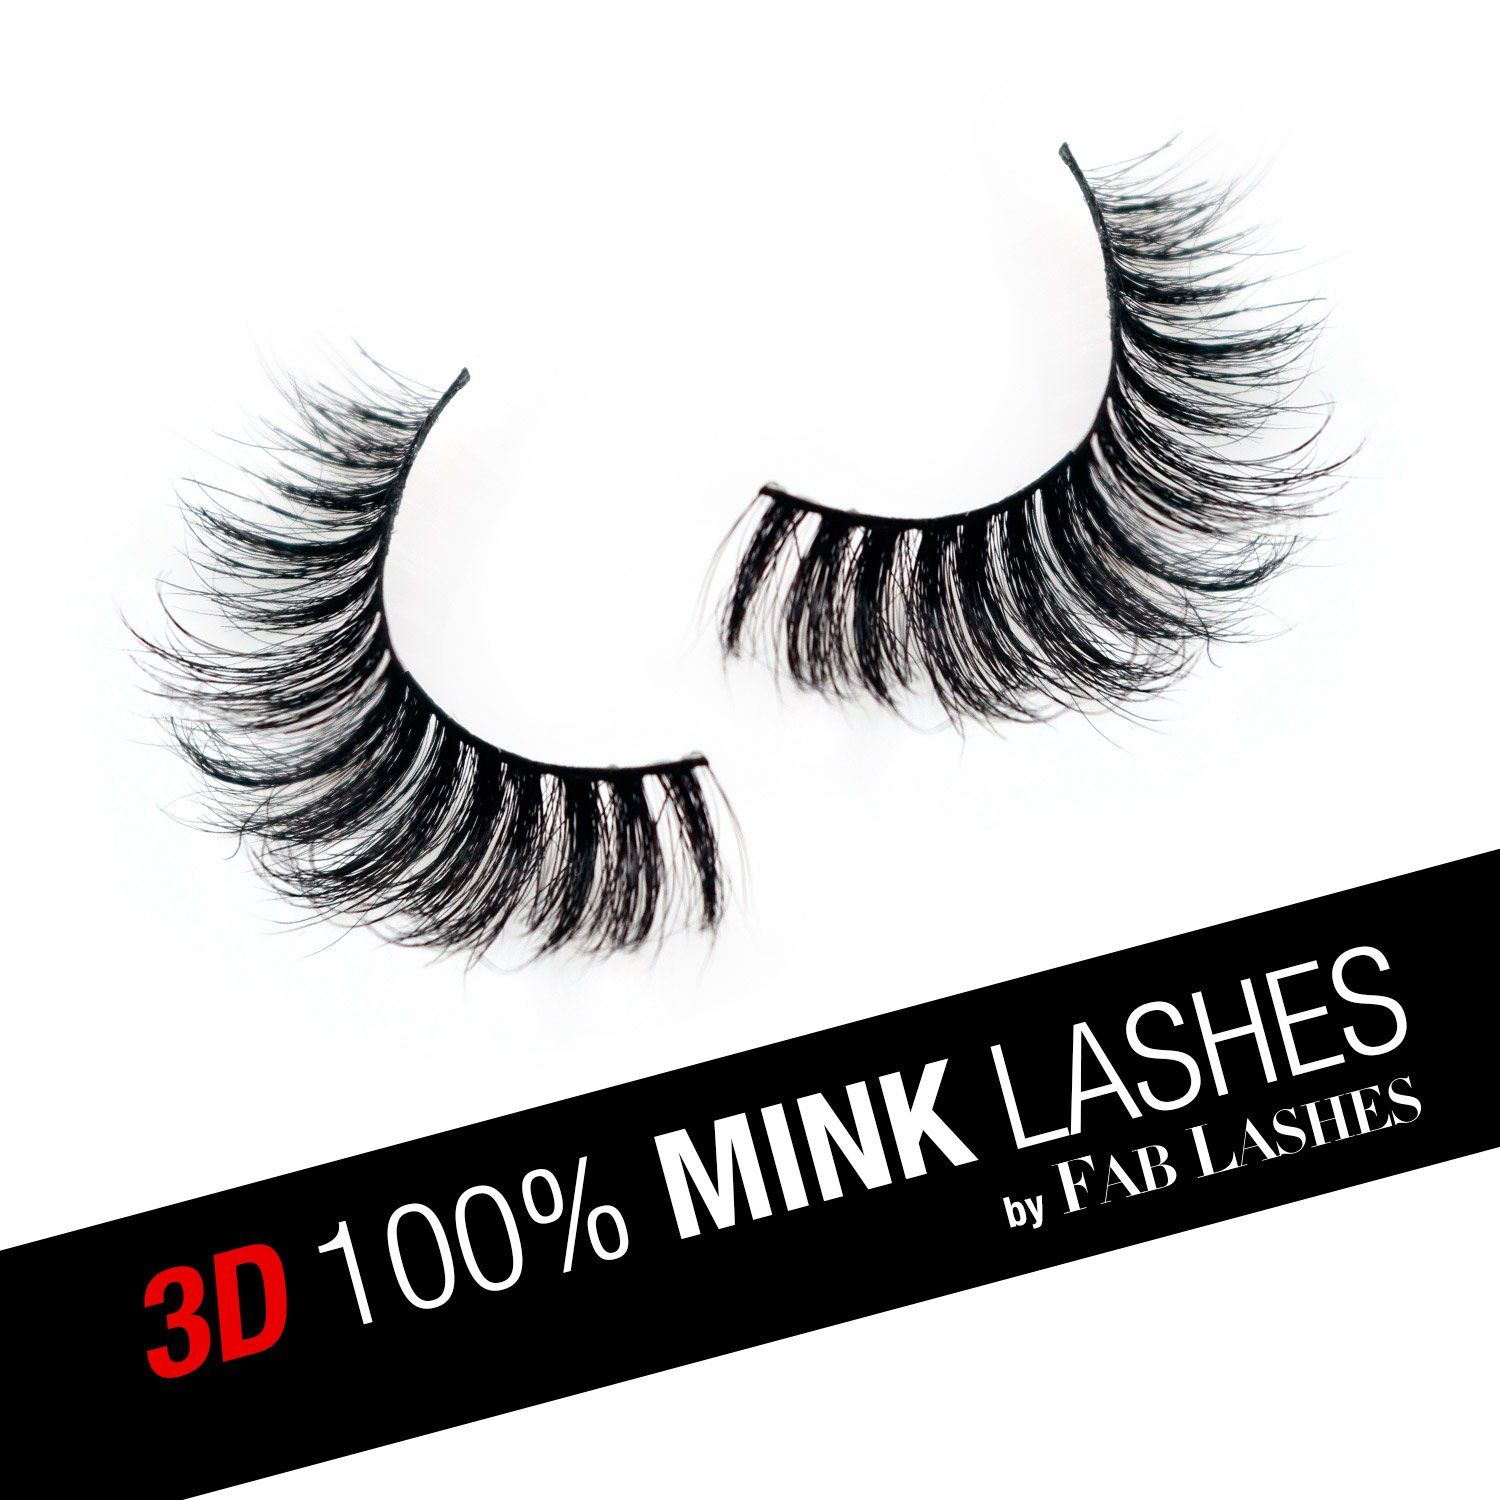 d41c5b4a8ac Instant Glam FAB Lashes 3D Mink Eyelashes Reusable 100% Real Handmade Mink  Fur Lashes Crisscross